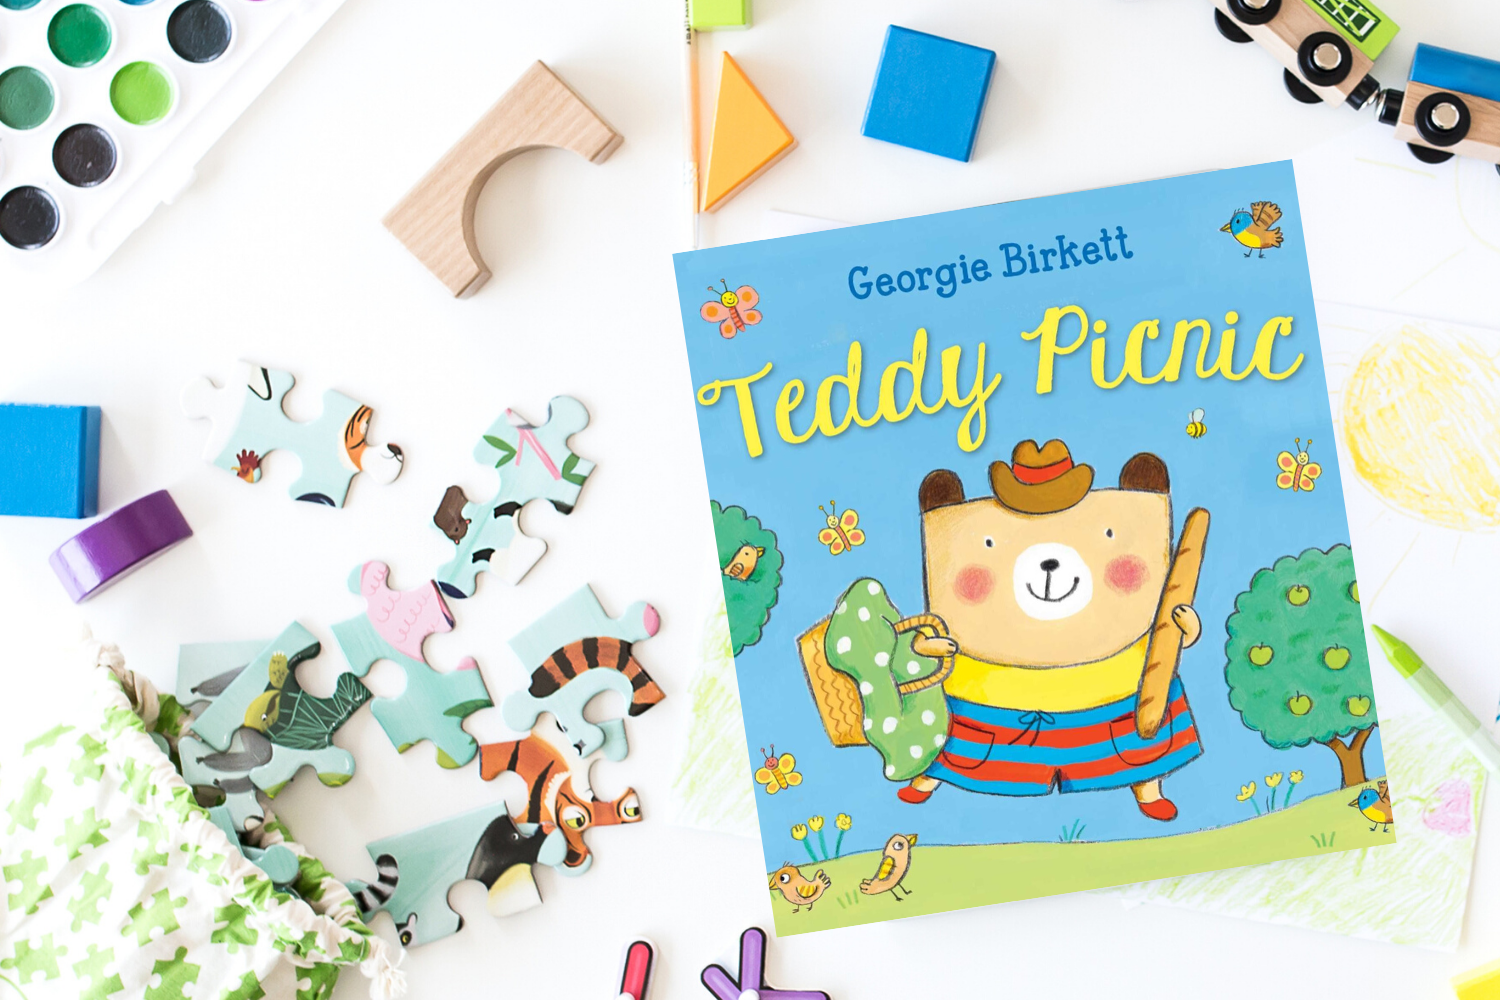 Teddy Picnic - Books from Past Boxes of Tiny Humans Read Kids Book Subscription Box